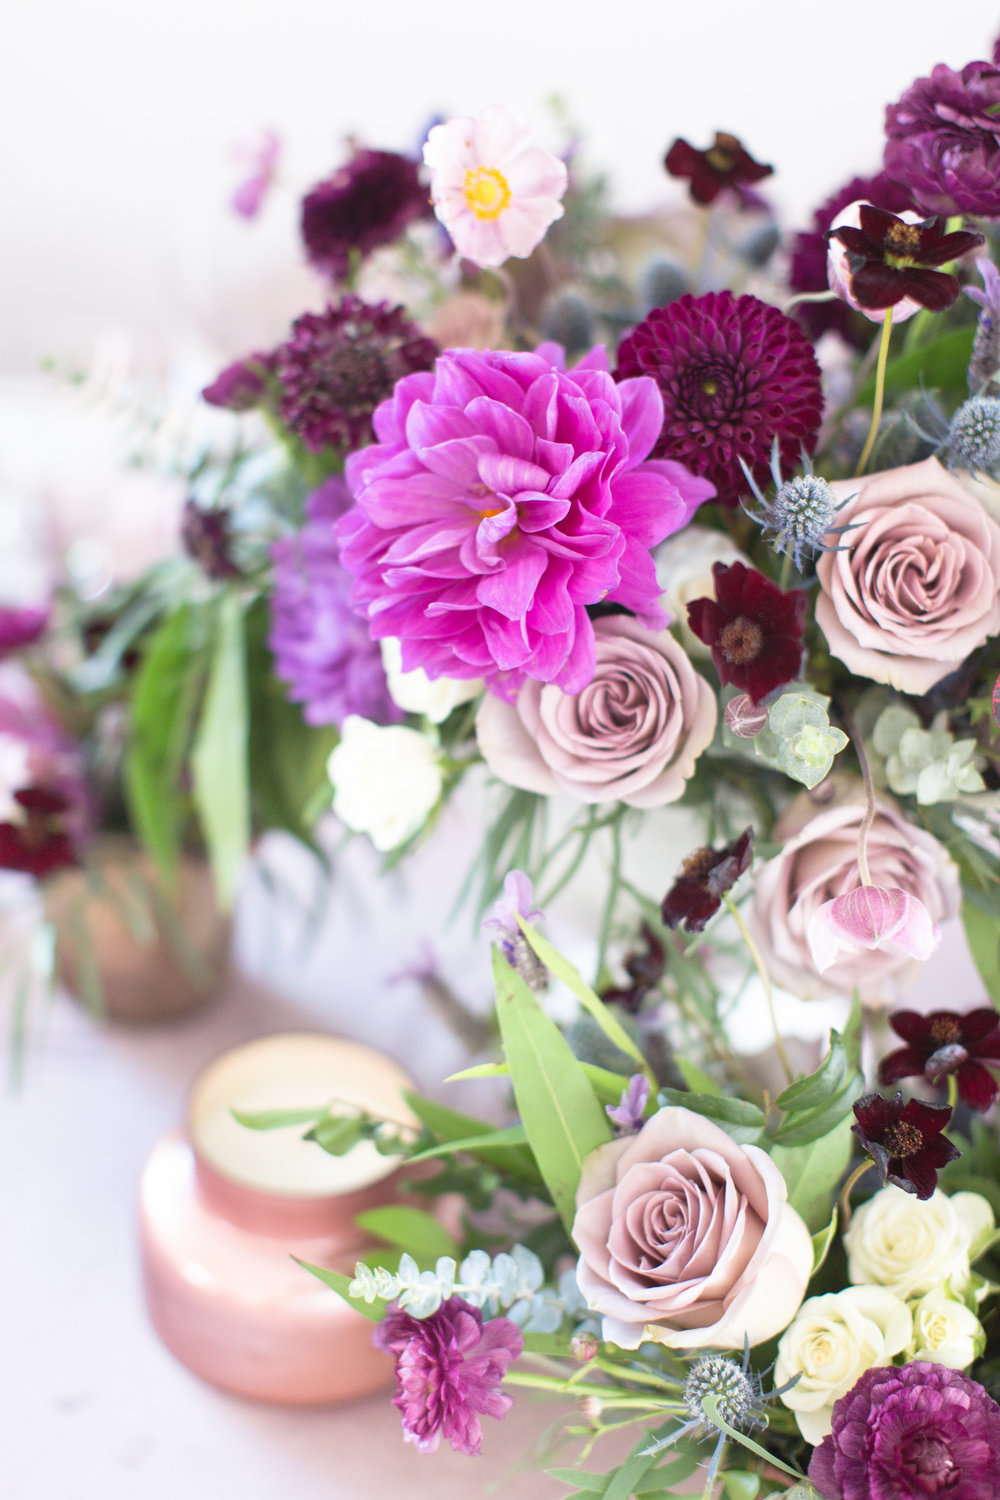 ultra violet flower arrangement inspiration.jpg